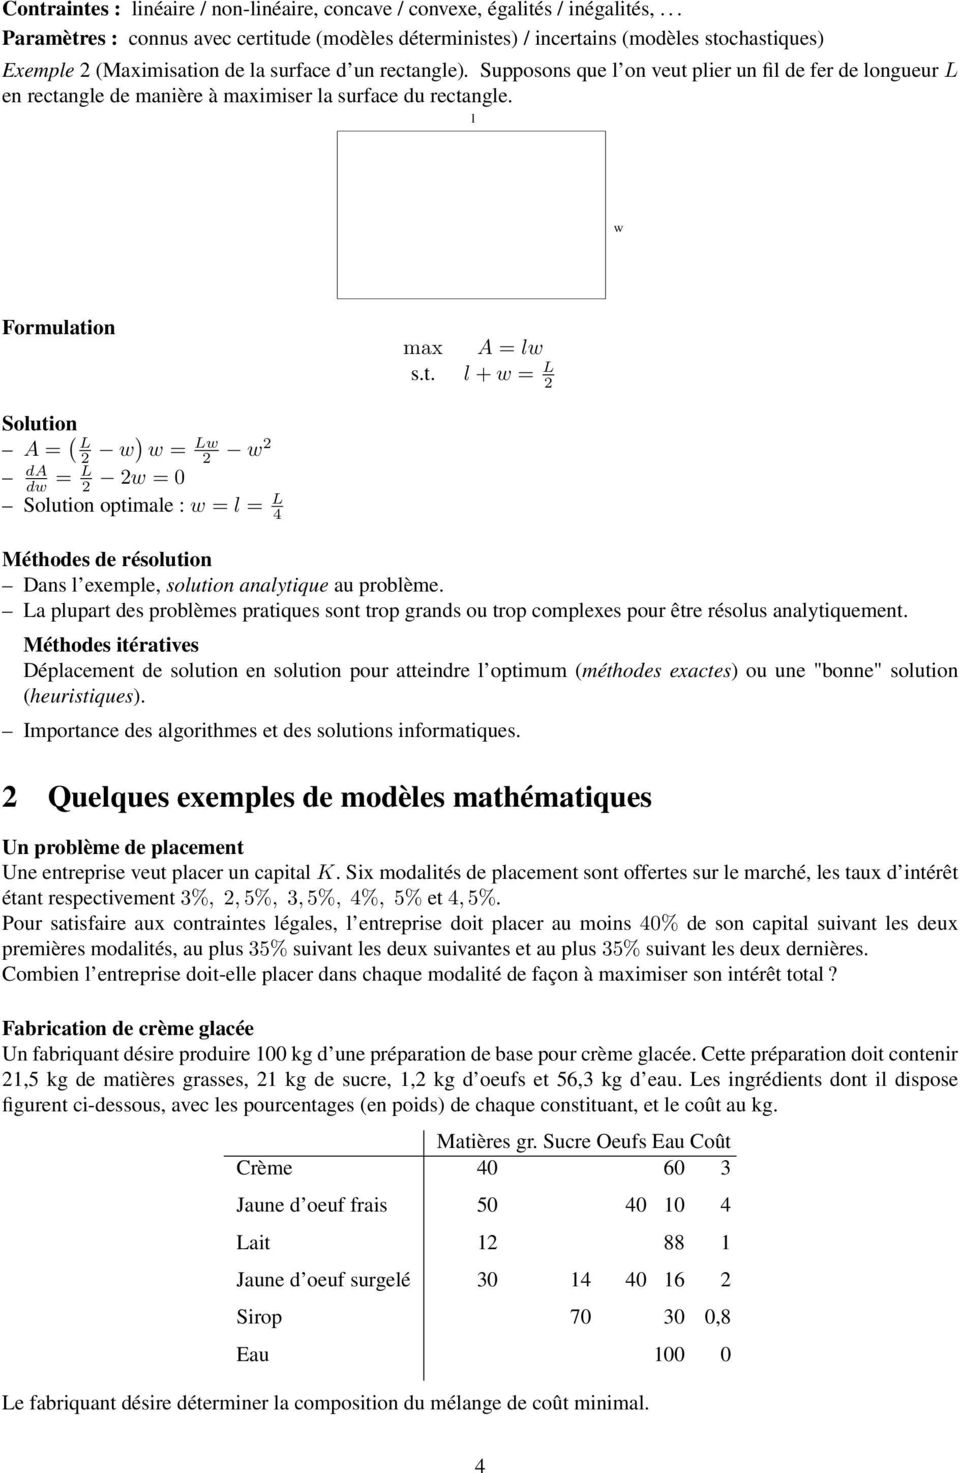 Supposons que l on veut plier un fil de fer de longueur L en rectangle de manière à maximiser la surface du rectangle. l w Formulation max A = lw s.t. l + w = L Solution A = ( L w) w = Lw w da dw = L w = Solution optimale : w = l = L Méthodes de résolution Dans l exemple, solution analytique au problème.